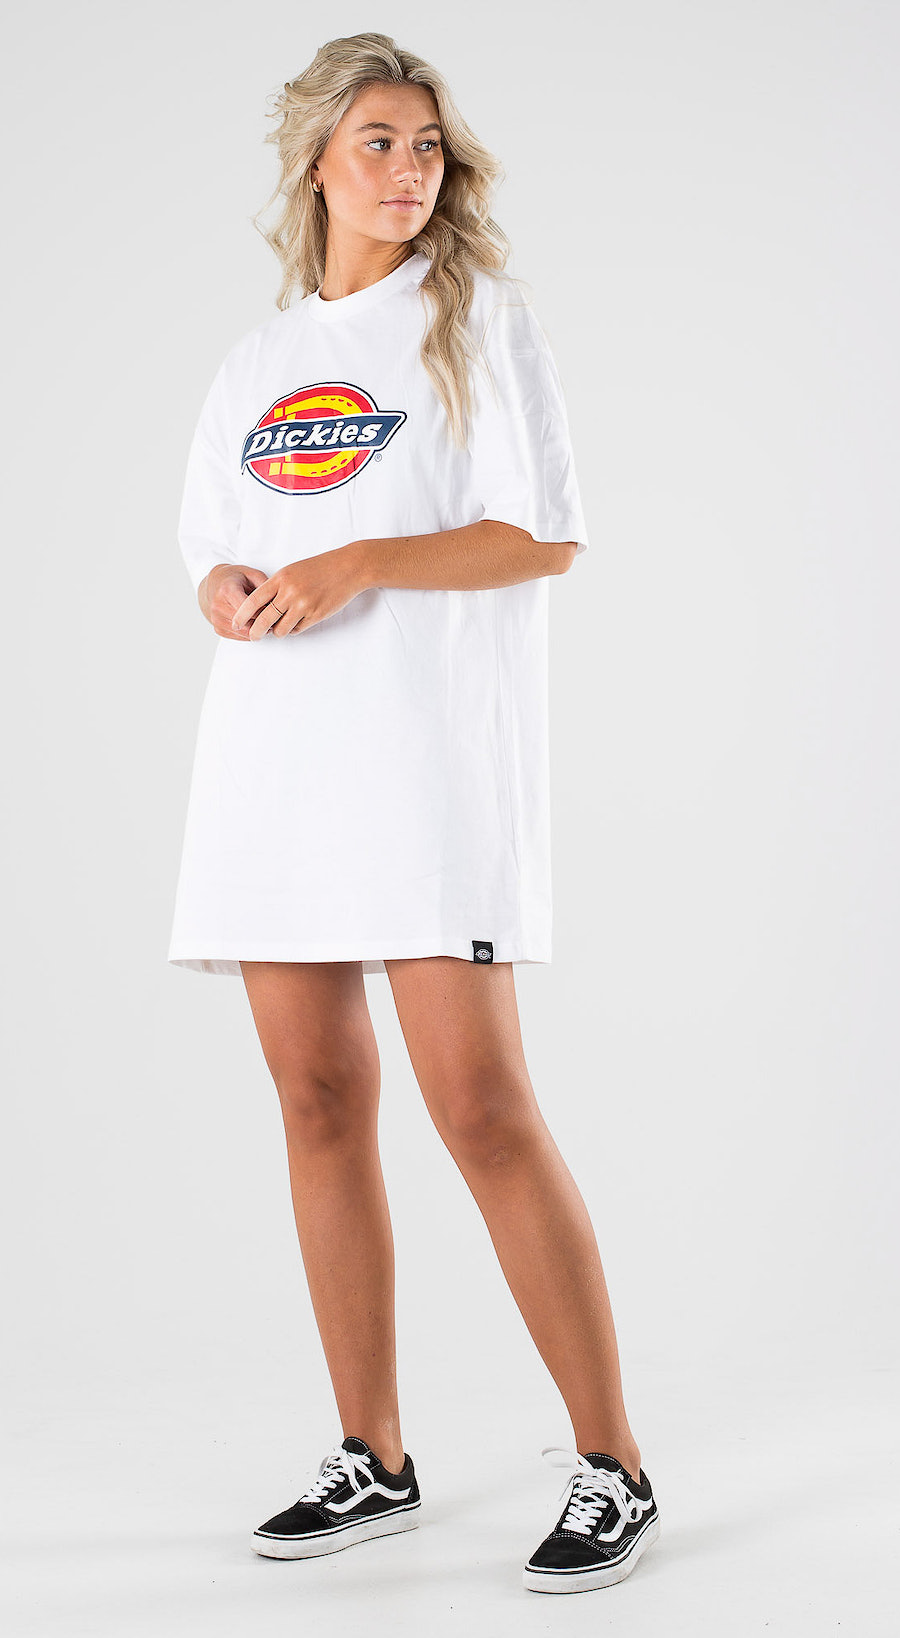 Dickies Varnell Tshirt Dress White Outfit Multi